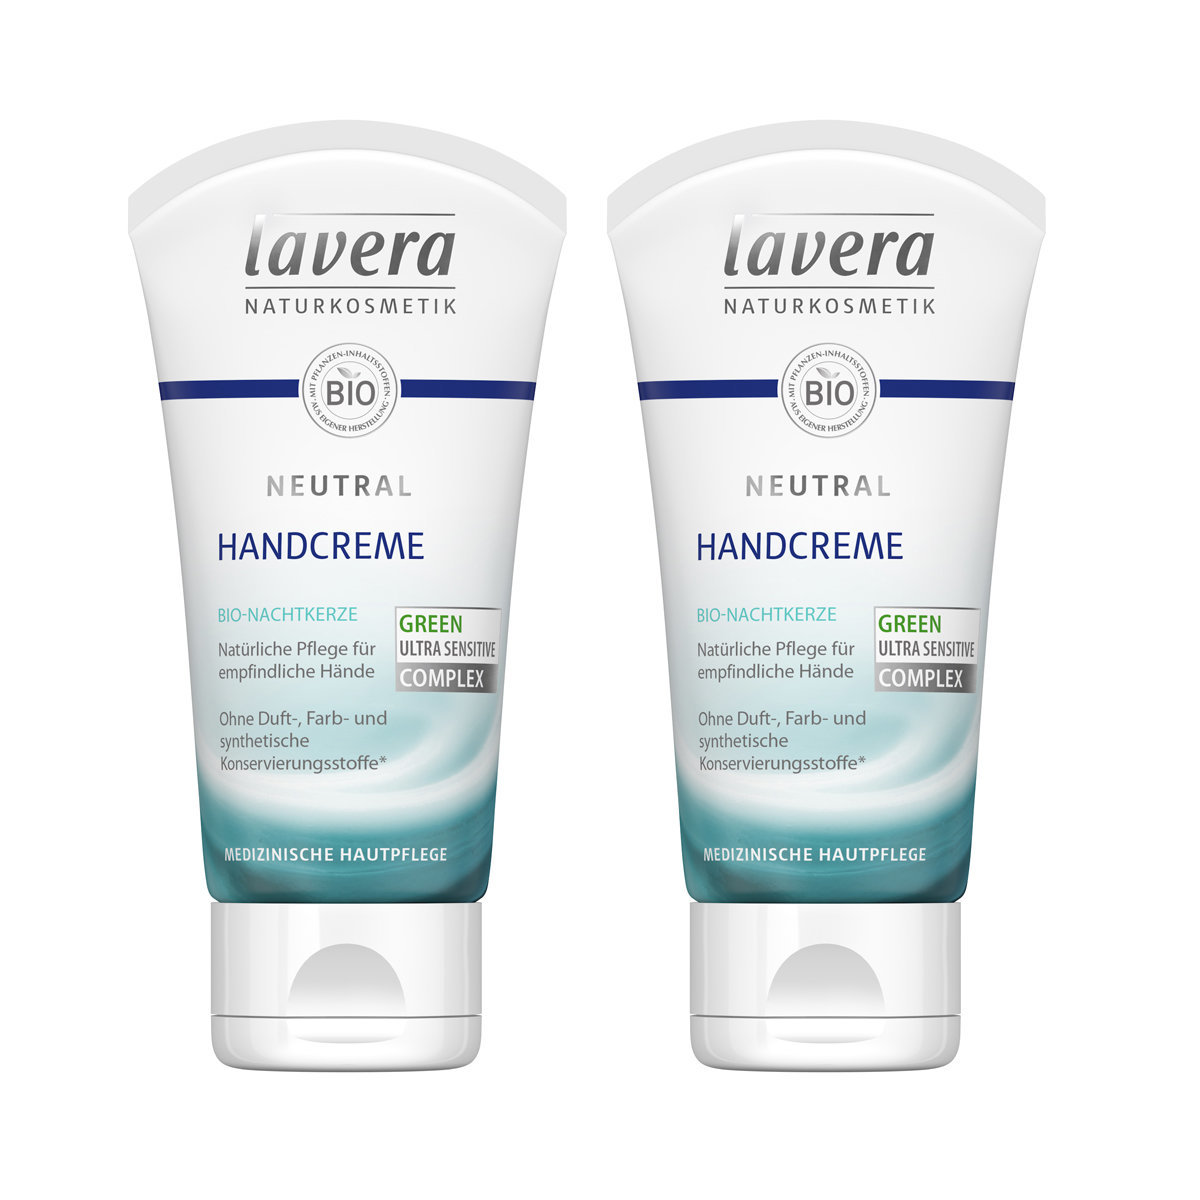 Medical Hand Cream (2pcs) (Sell-by-date 03/2021)